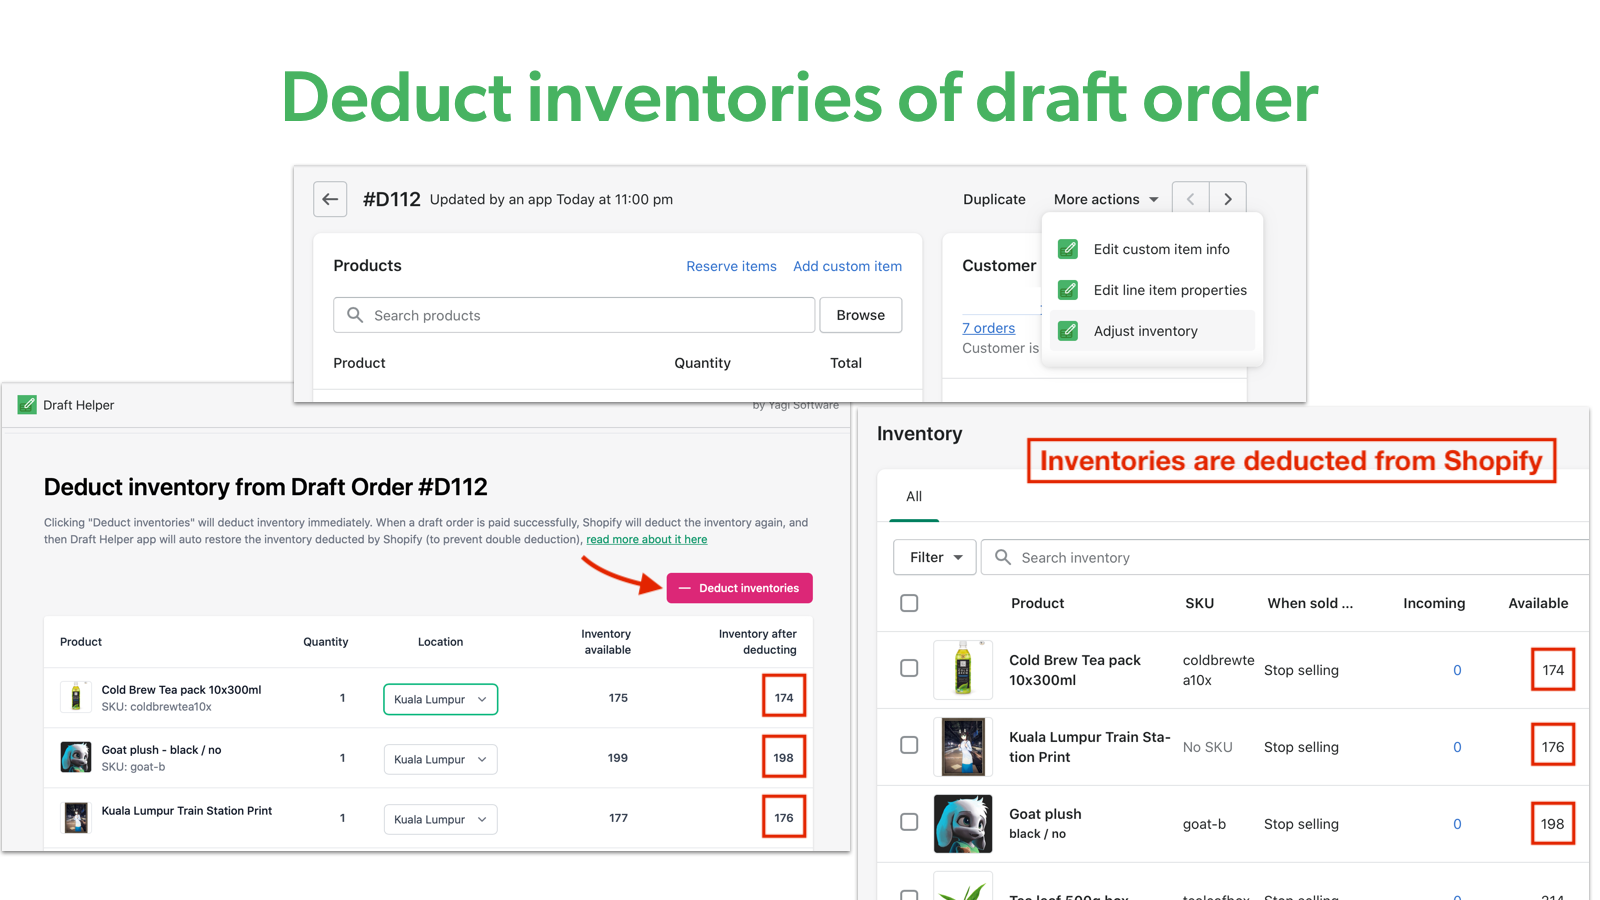 Deduct inventories of draft order